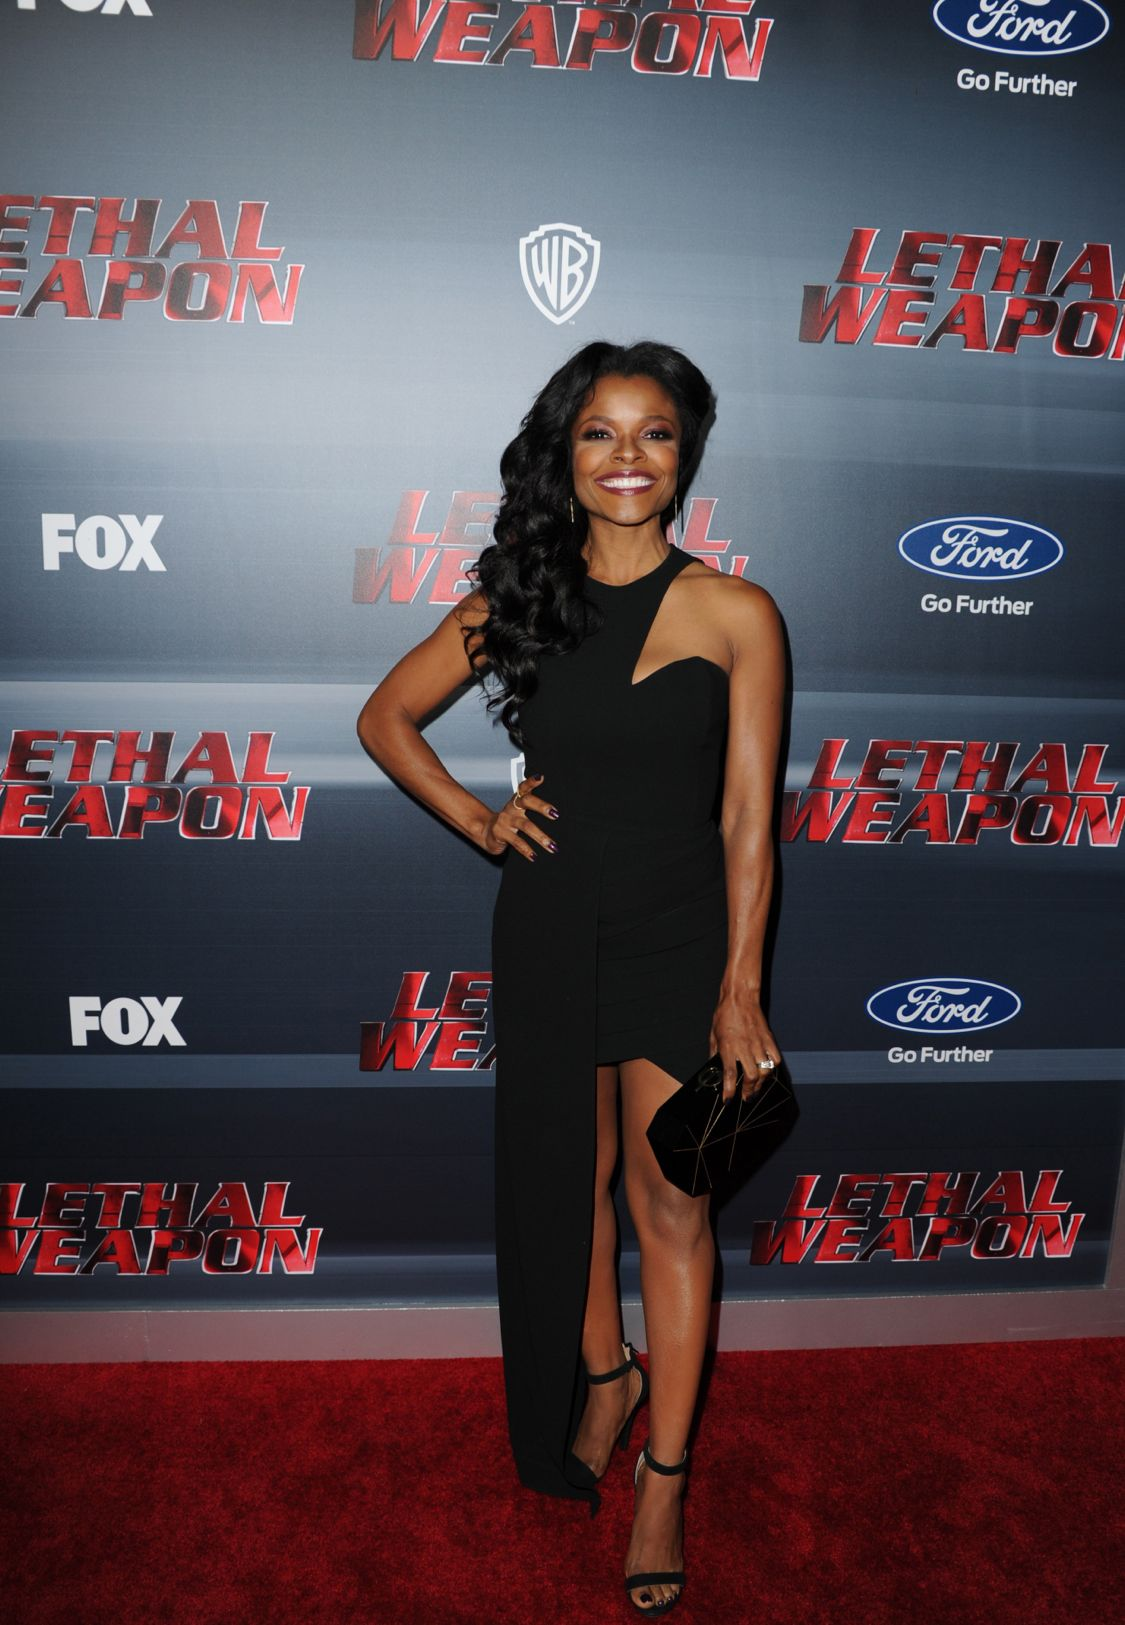 LETHAL WEAPON: Keesha Sharp celebrates the LETHAL WEAPON premiere party at NeueHouse Hollywood on Monday, Sept. 12, in Los Angeles, CA, sponsored by Ford. LETHAL WEAPON premieres Wednesday, Sept. 21 (8:00-9:00 PM ET/PT) on FOX. ©2016 Fox Broadcasting Co. CR: Frank Micelotta/FOX